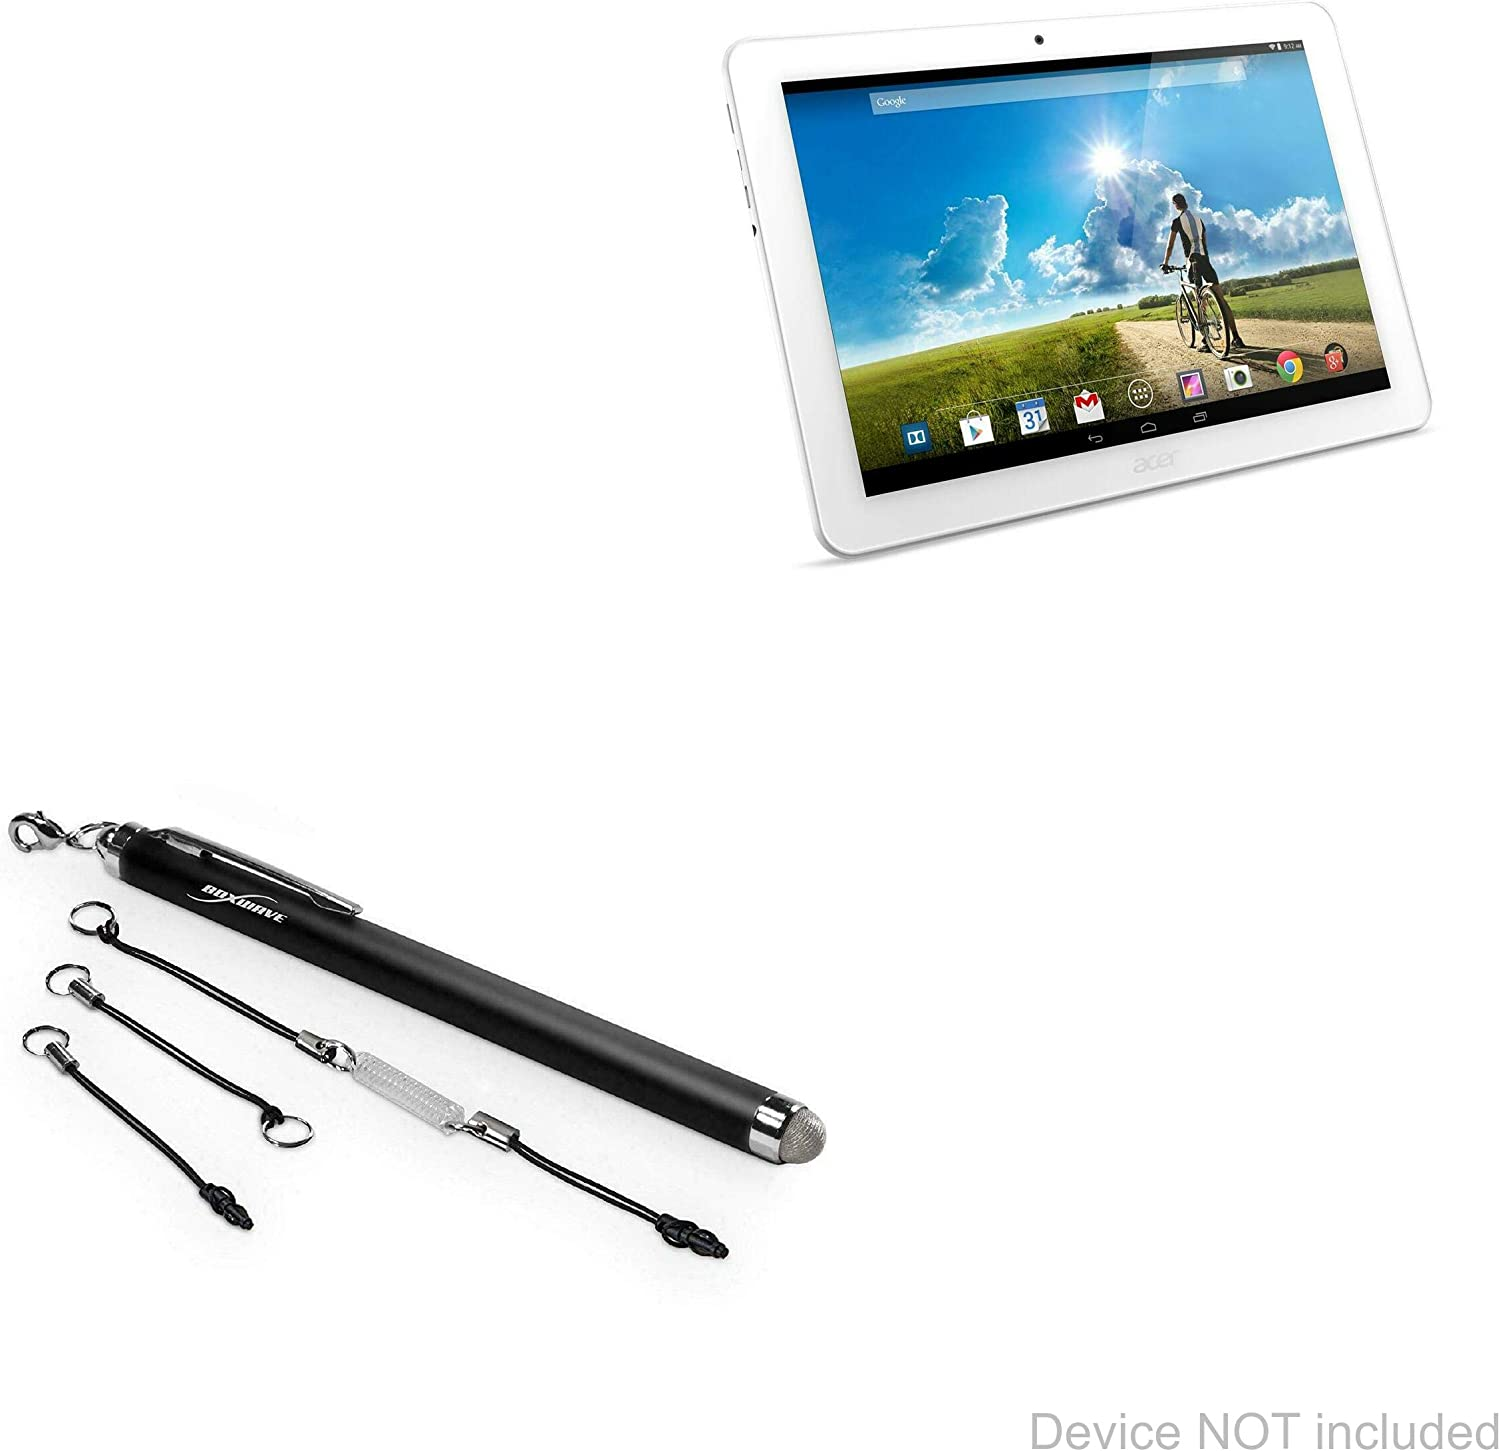 Stylus Pen for Acer Iconia Tab 10 A3-A20 (Stylus Pen by BoxWave) - EverTouch Capacitive Stylus, Fiber Tip Capacitive Stylus Pen for Acer Iconia Tab 10 A3-A20 - Jet Black